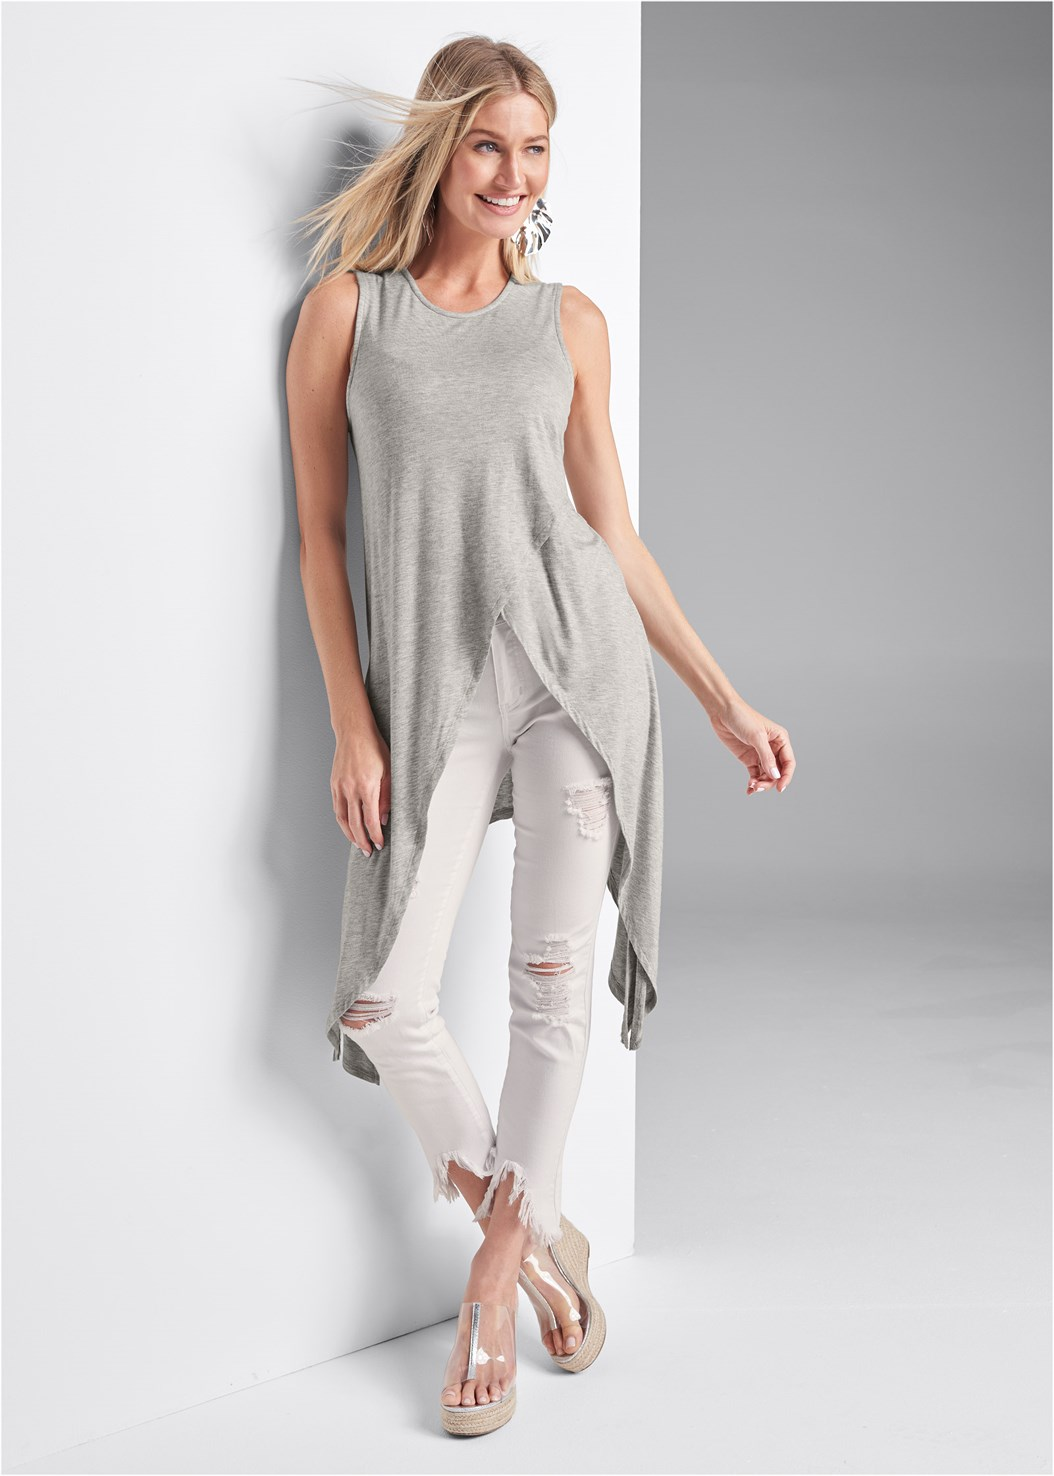 Casual High Low Top,Triangle Hem Jeans,Naked T-Shirt Bra